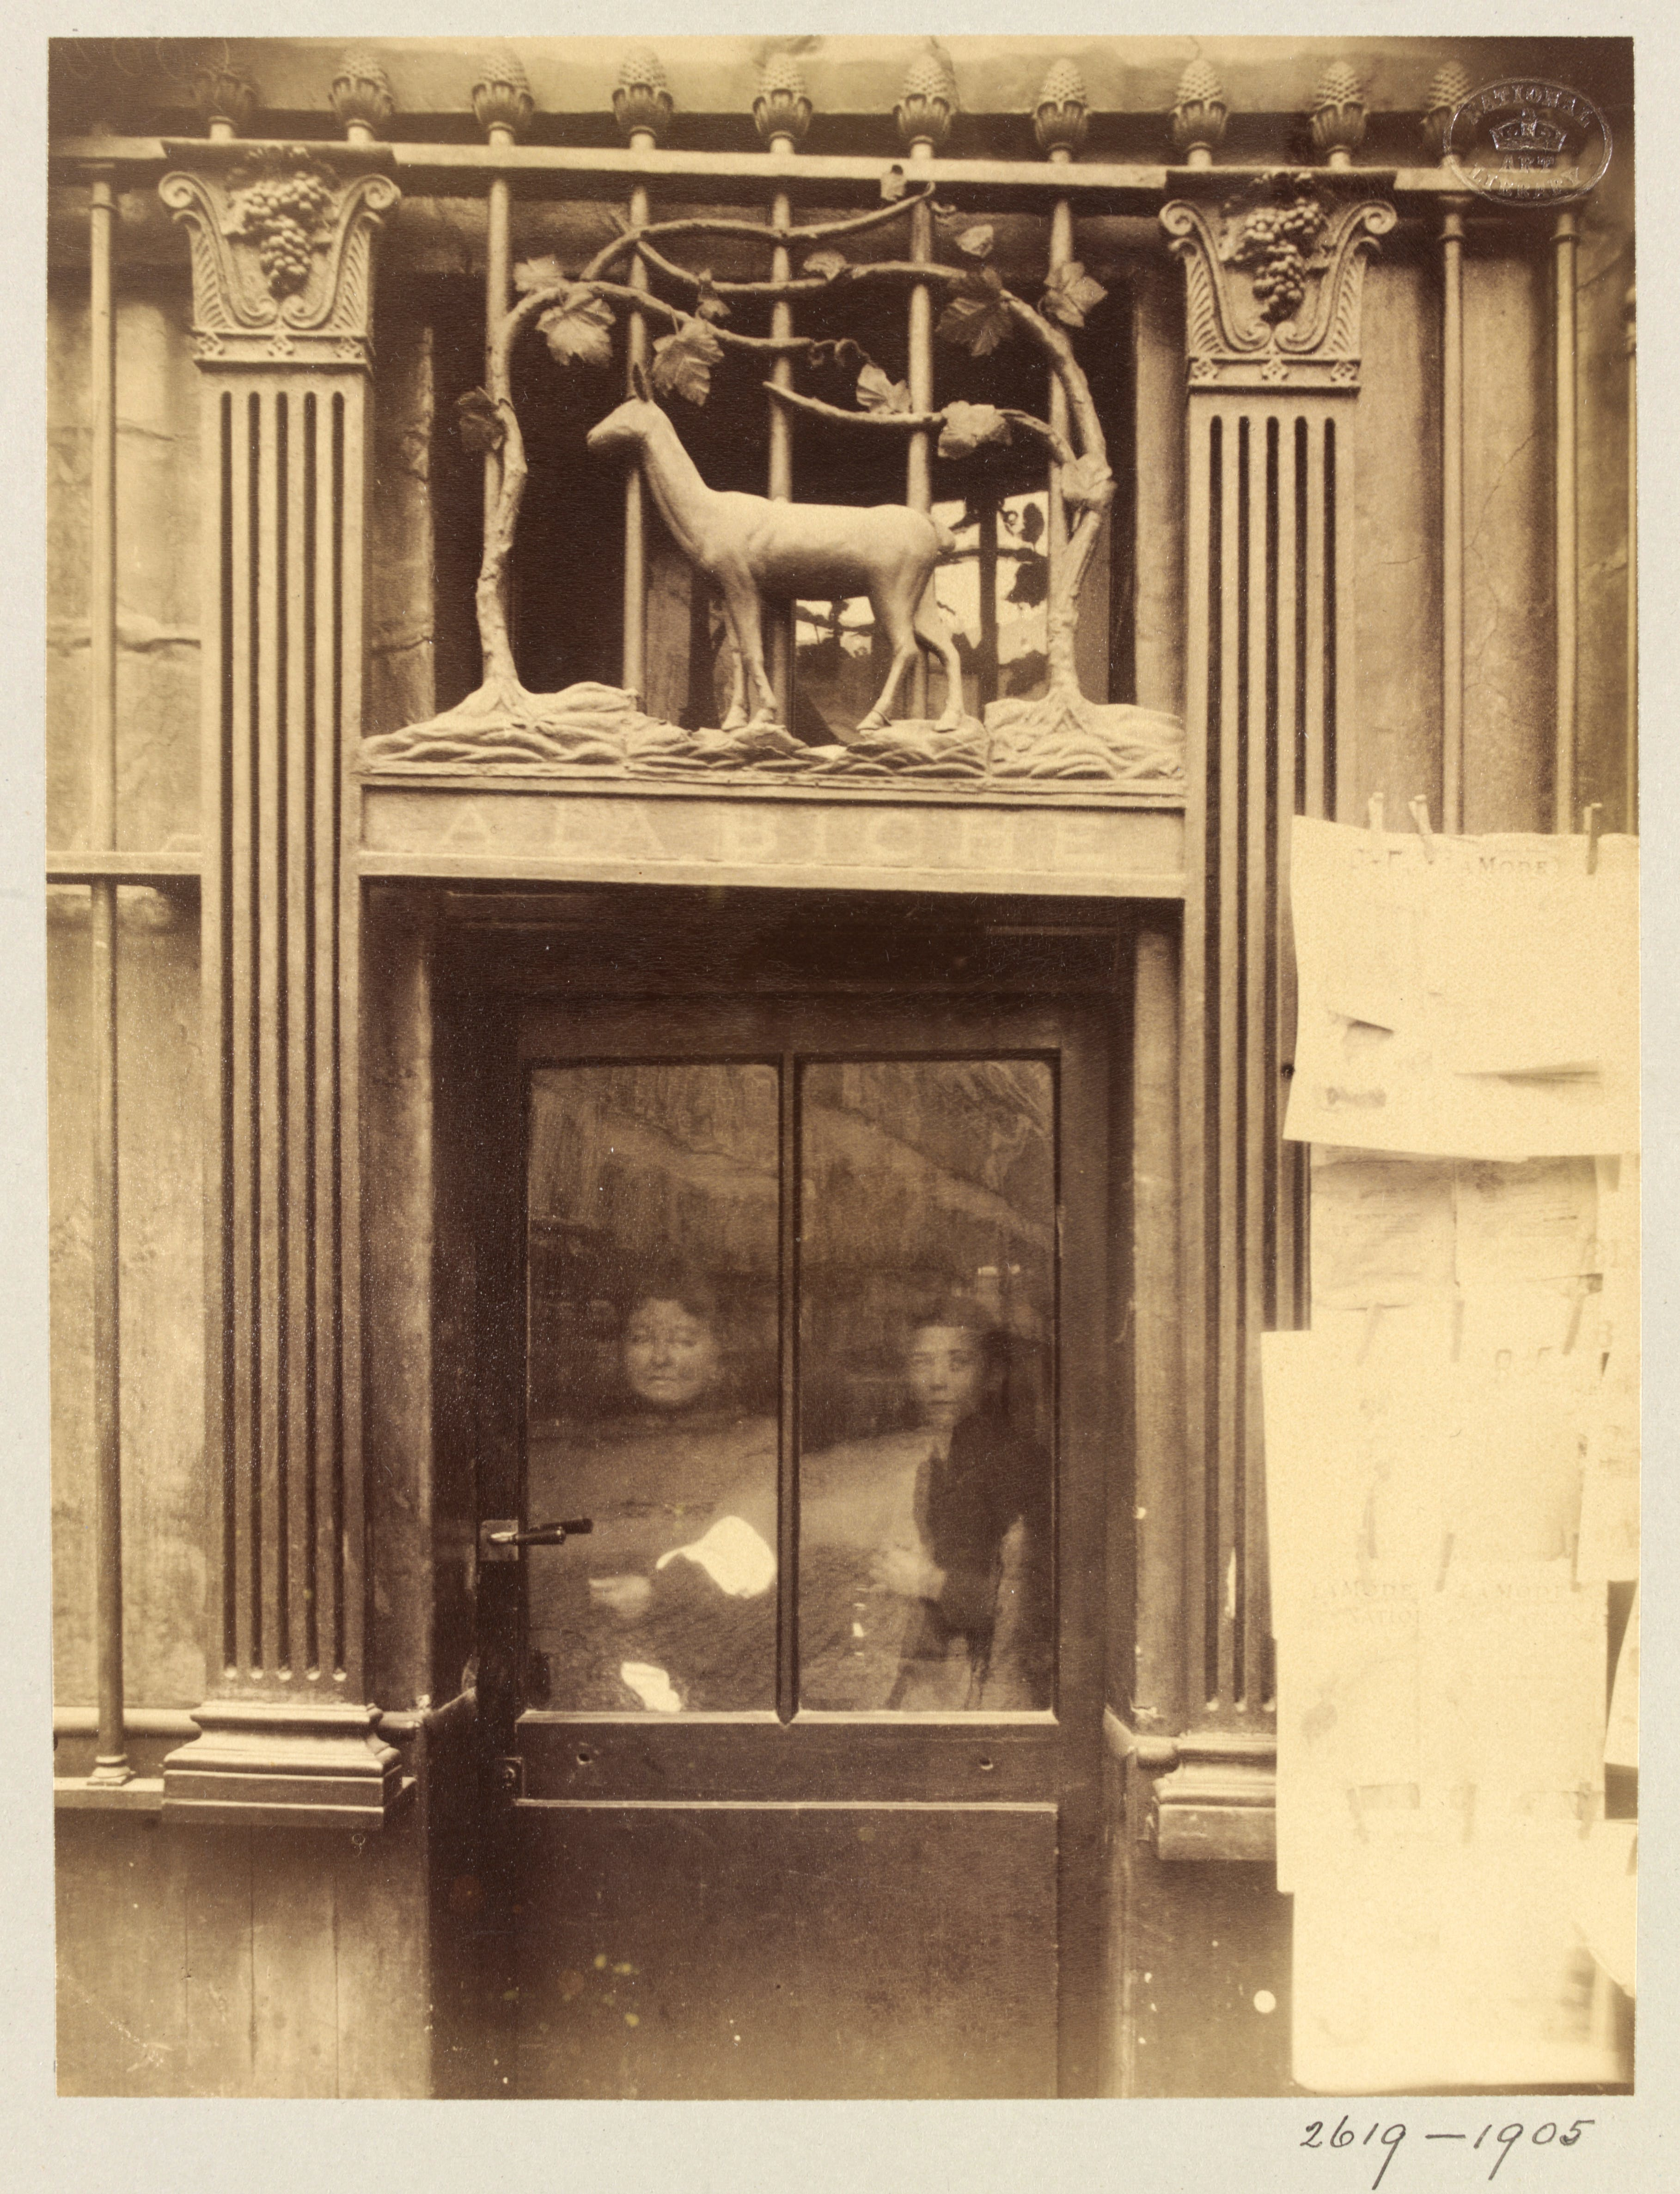 Shop sign, rue Geoffroy-St-Hilaire, Paris, (c. 1900), Eugène Atget, © Victoria and Albert Museum